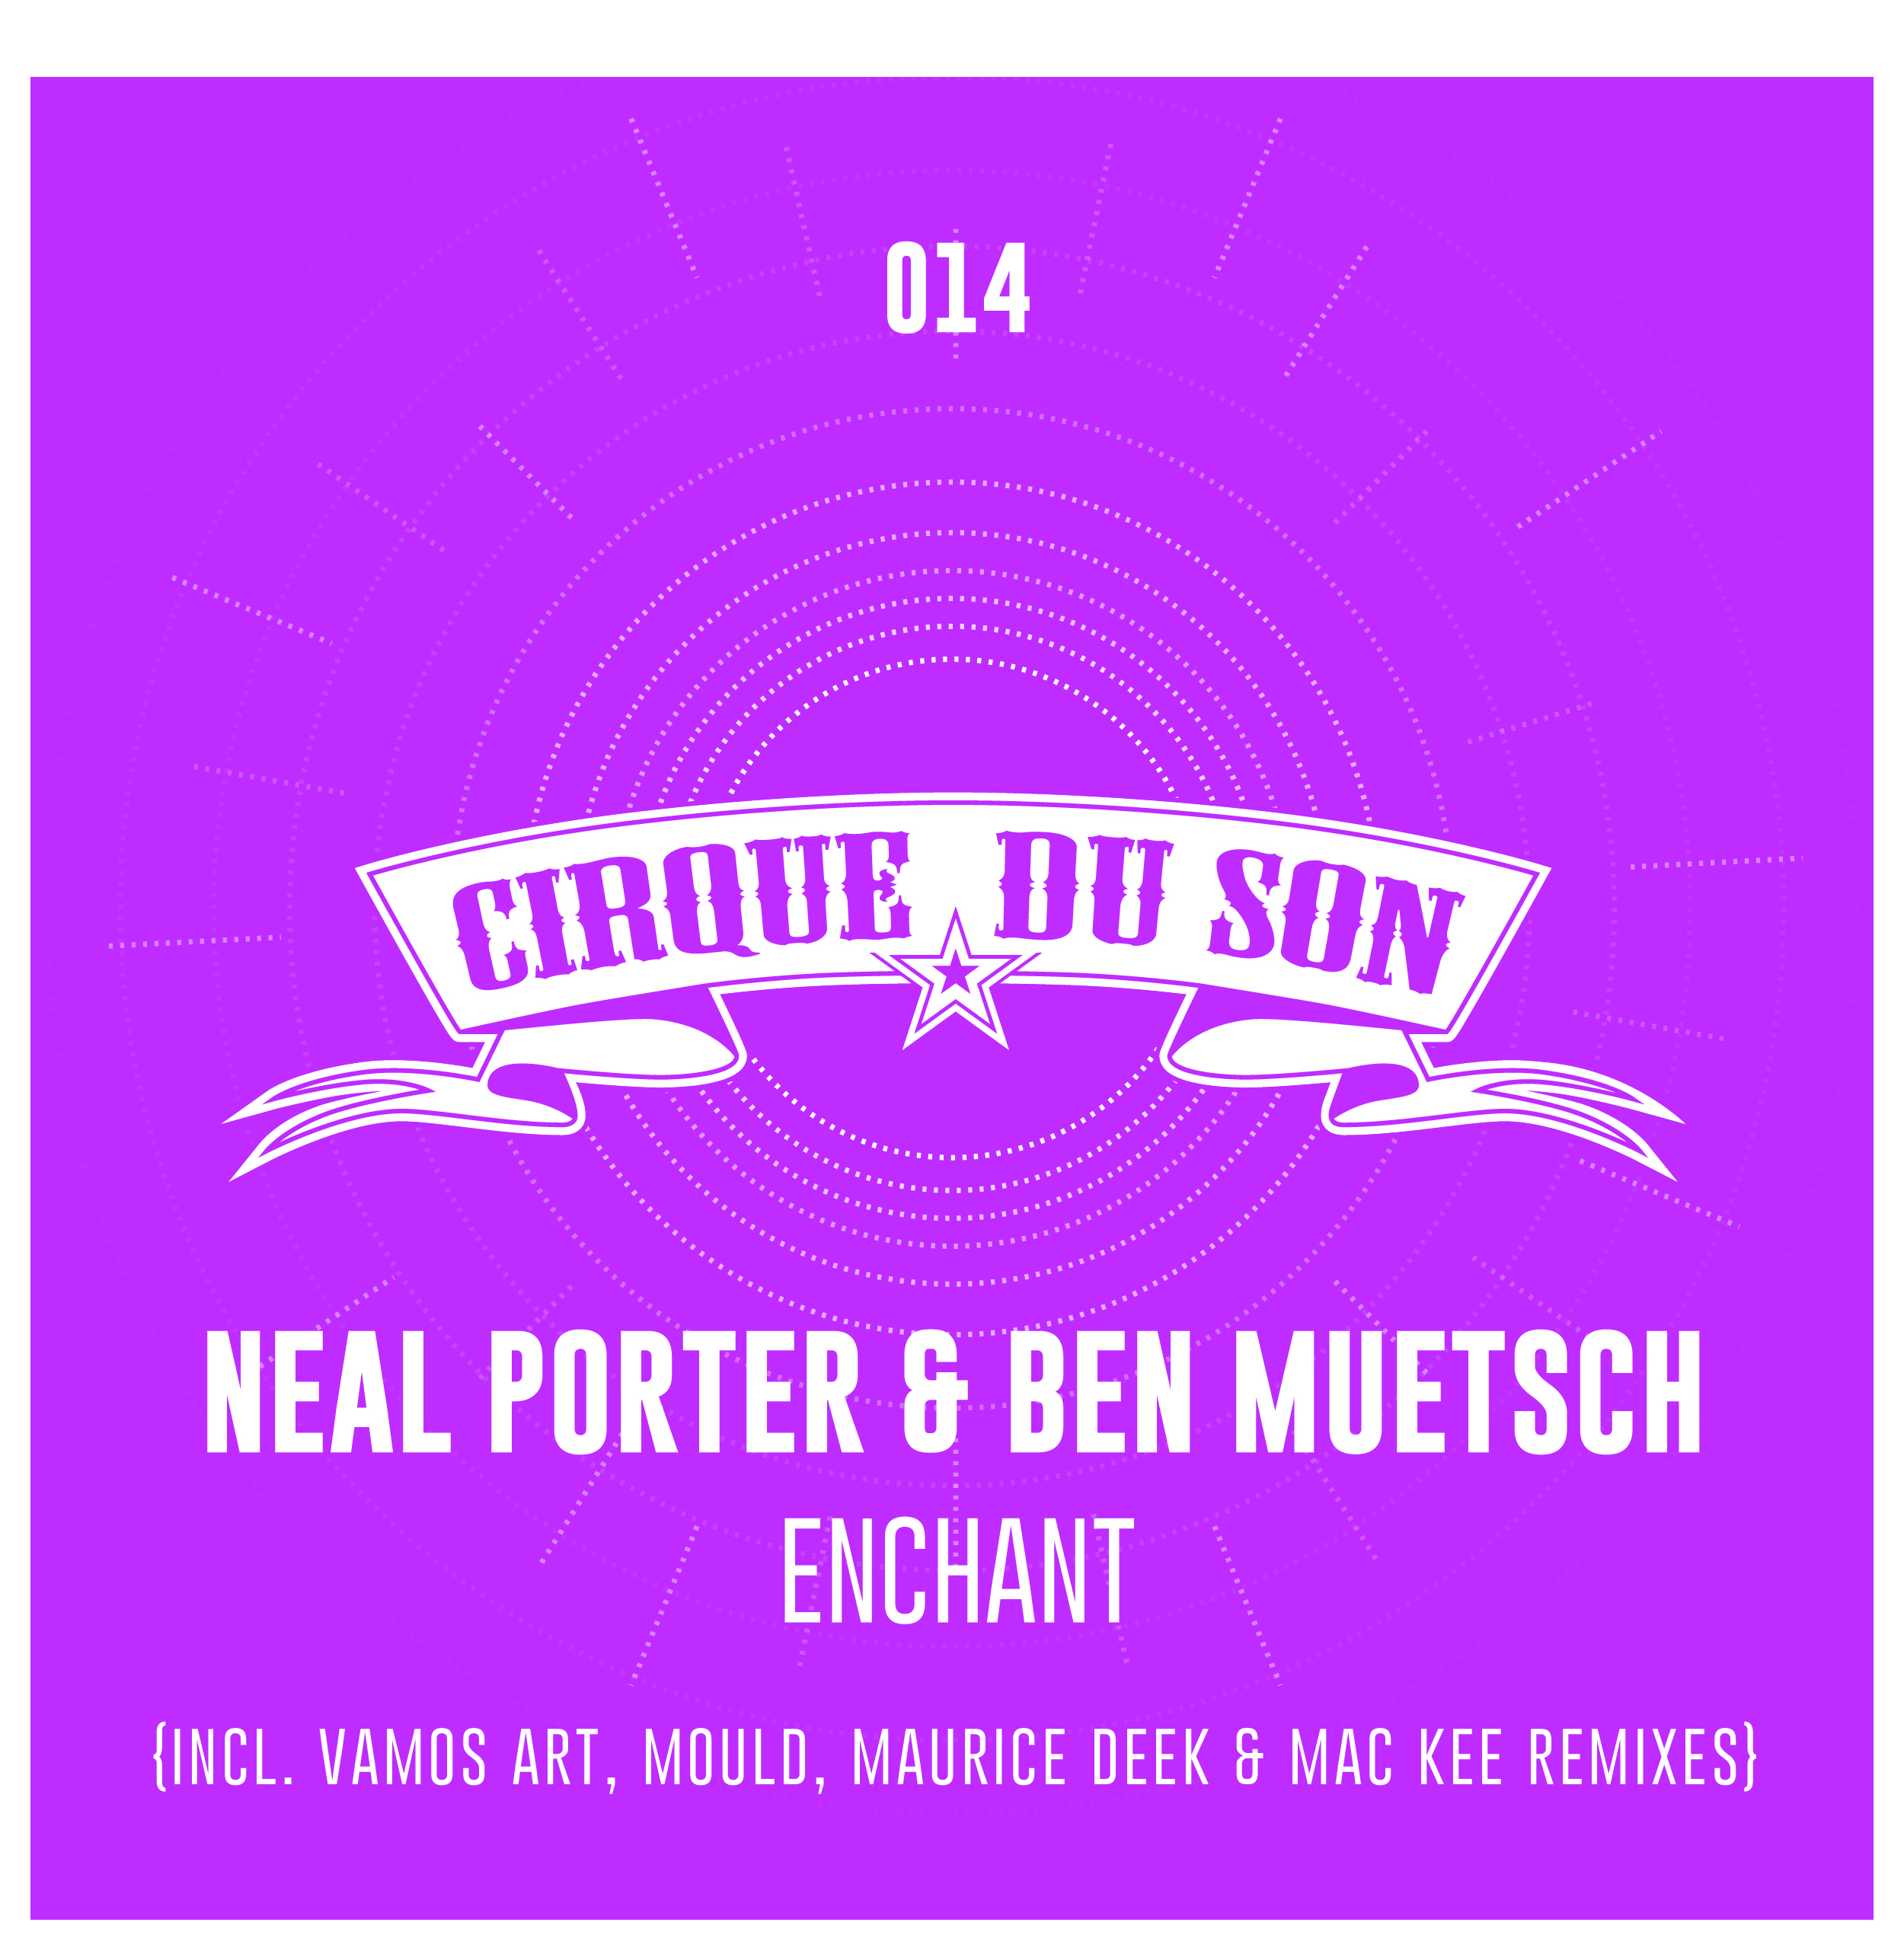 CIRQ014 Neal Porter & Ben Muetsch - Enchant (Incl. Vamos Art, Maurice Deek & Mac Kee, Mould Remixes)